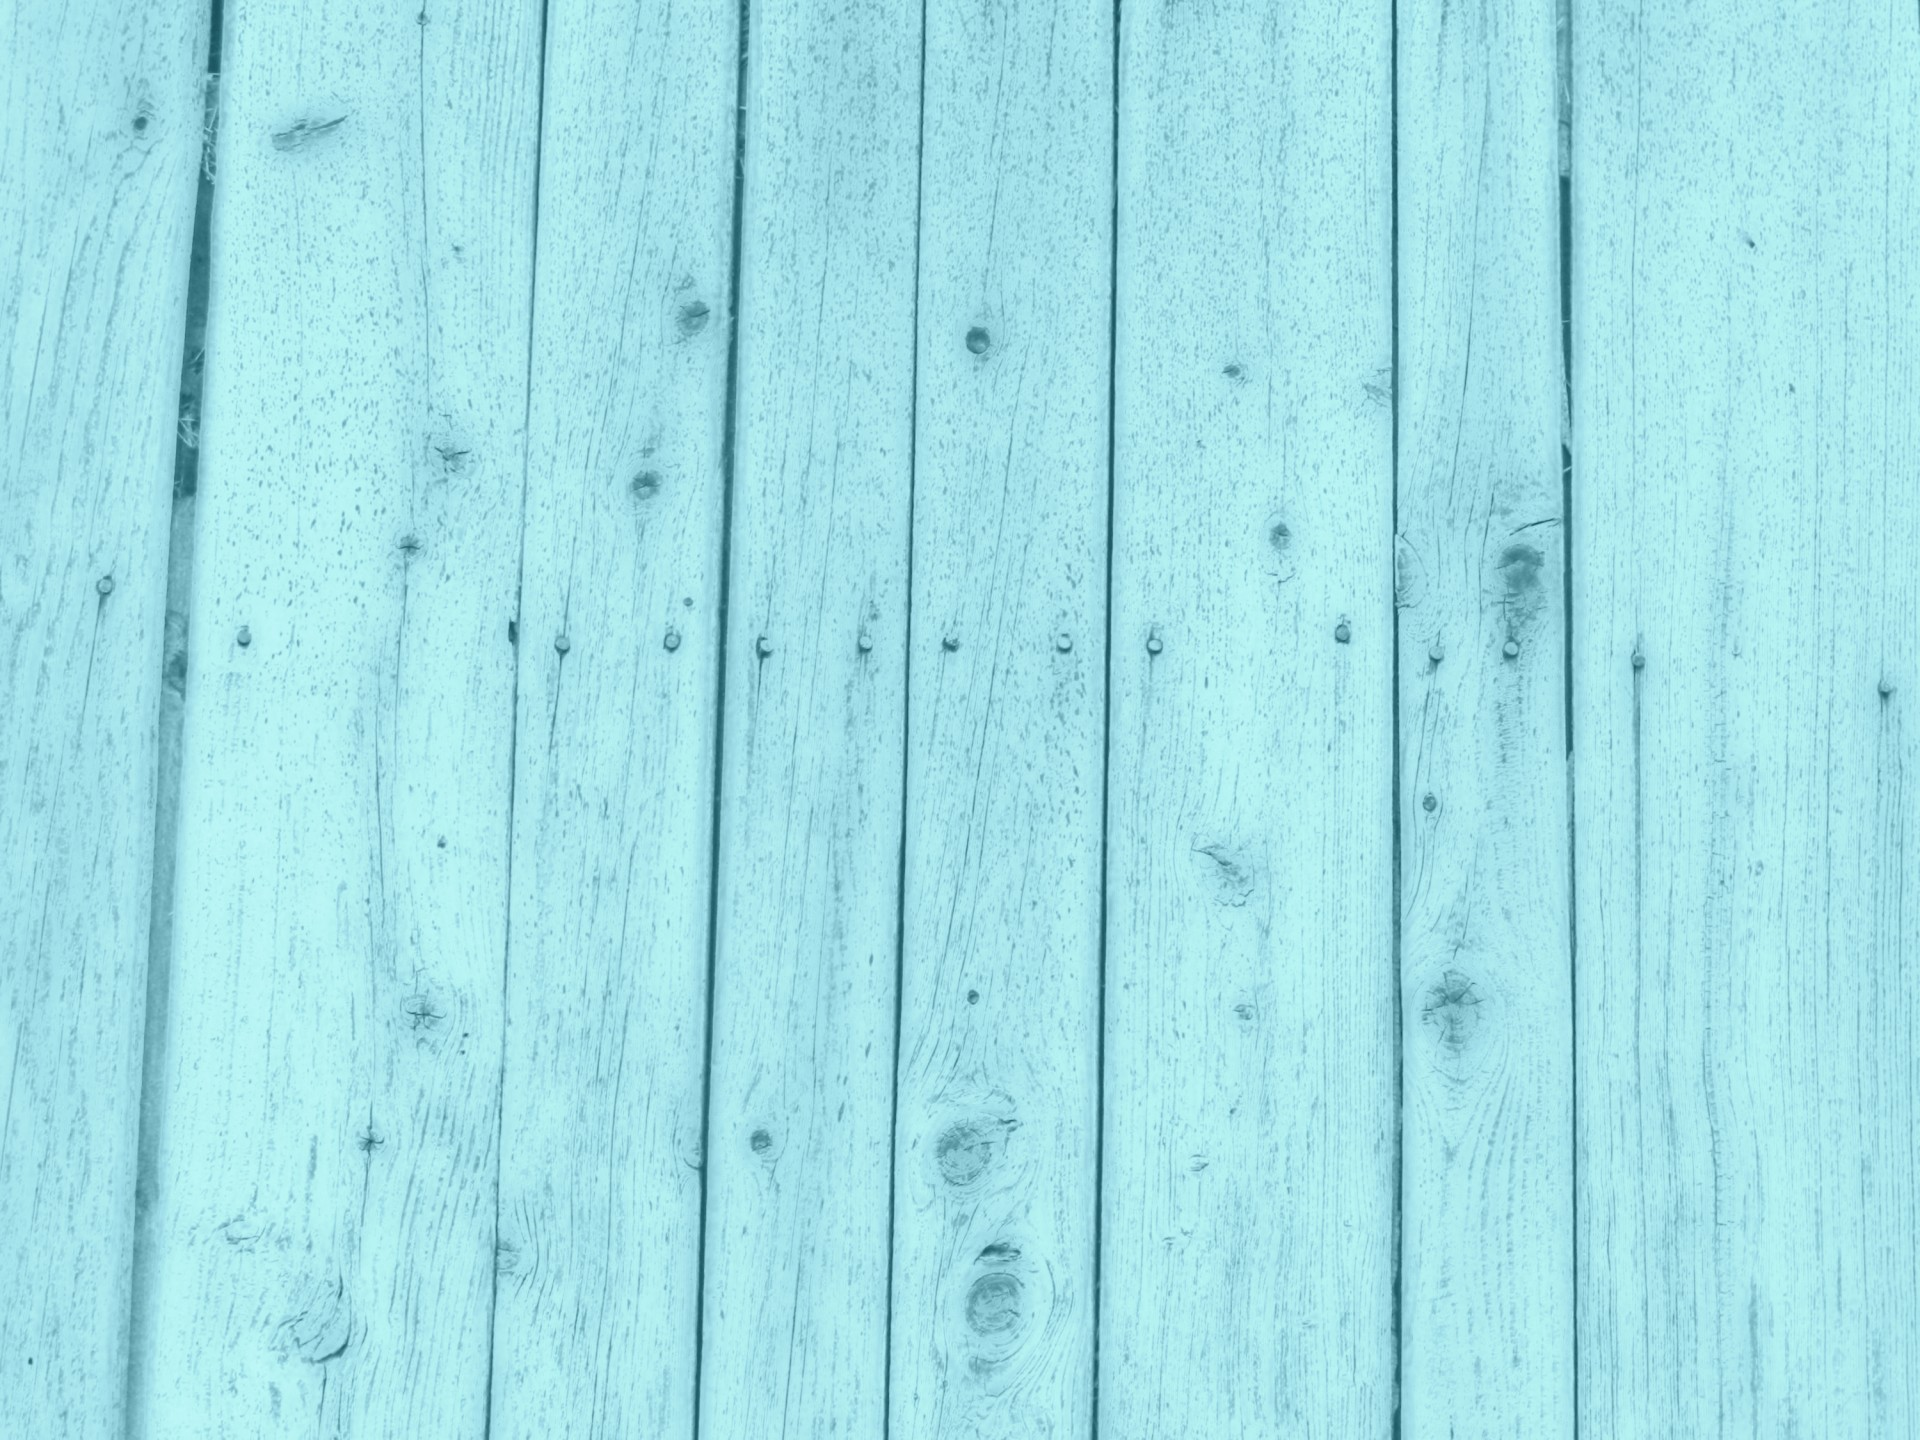 50 Hd Wood Wallpapers For Free Download: Rustic Barn Wood Background ·① Download Free Beautiful